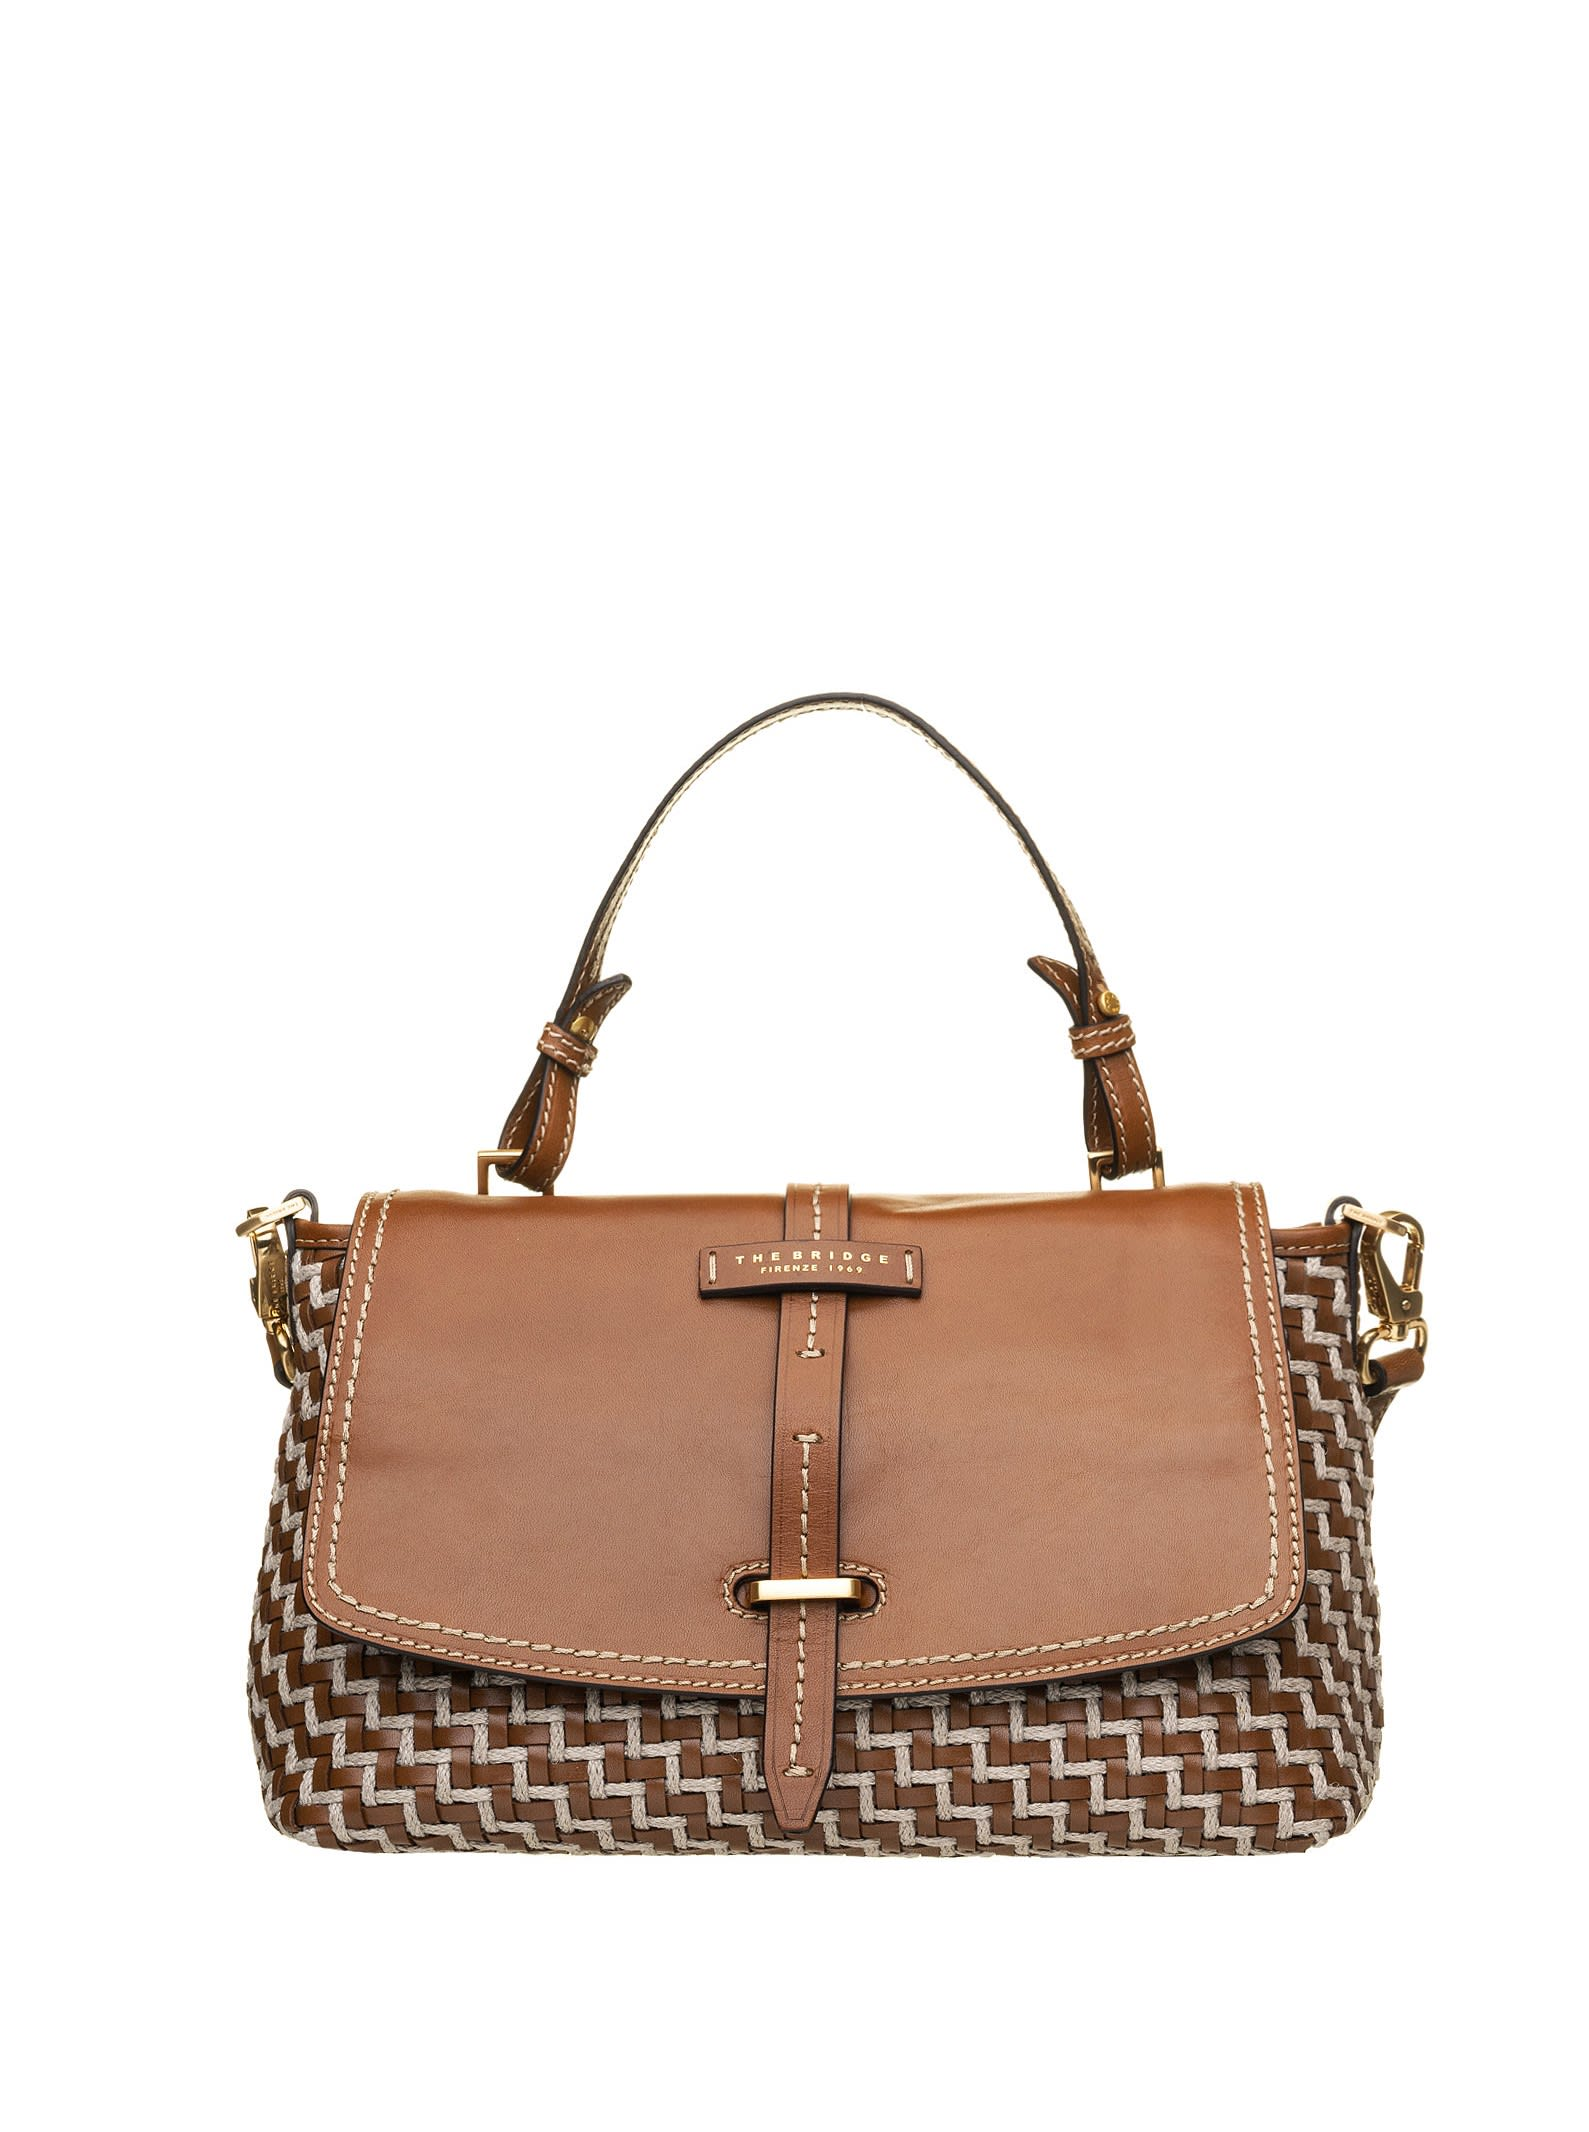 The Bridge The Bridge Satchel Woven Leather Bag